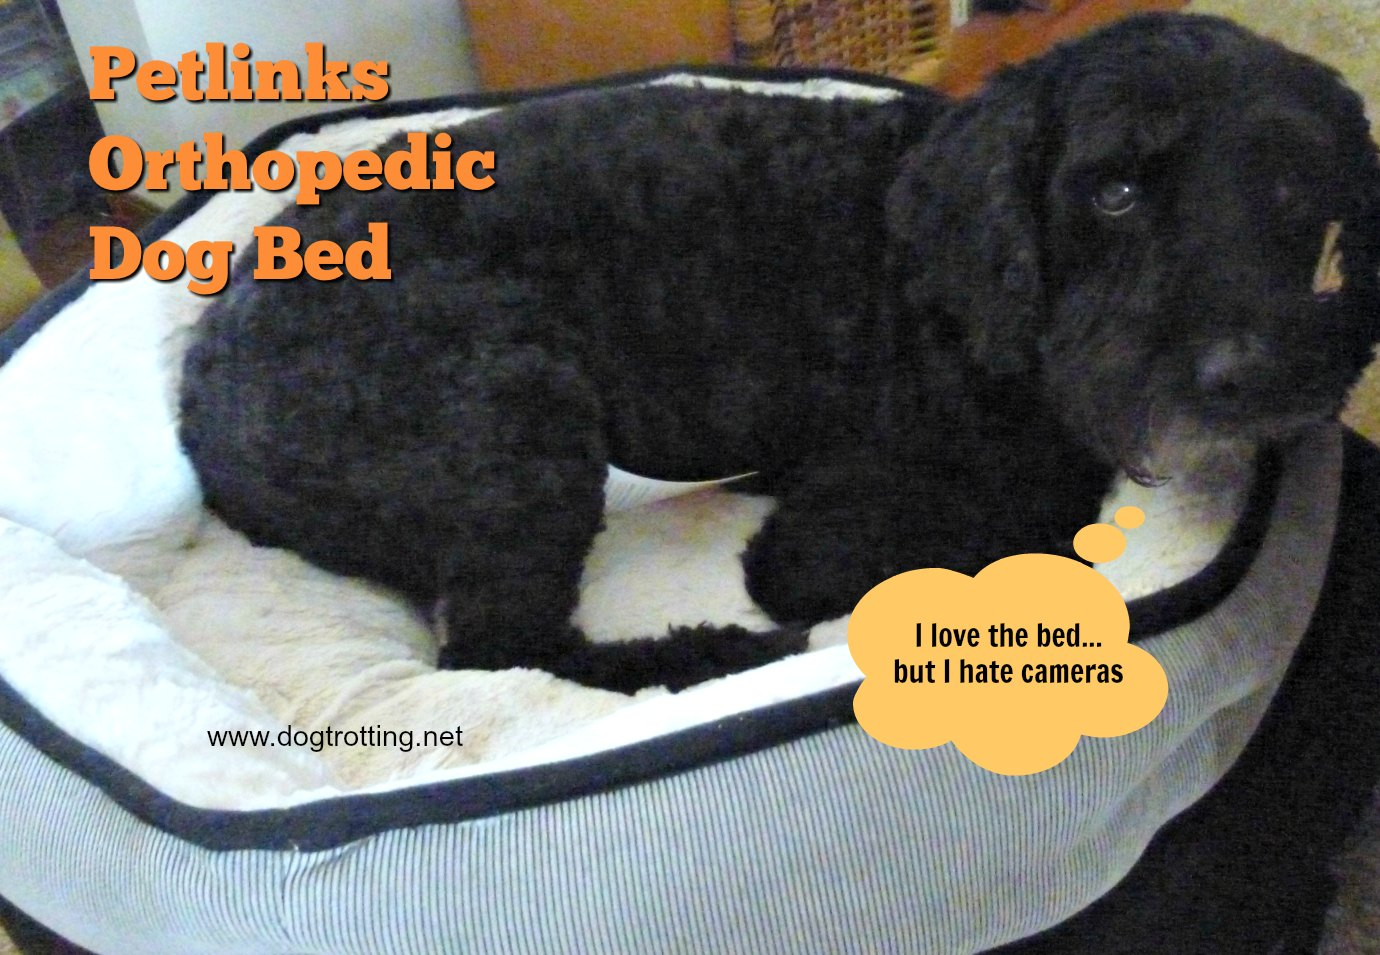 dog in orthopedic dog bed www.dogtrottting.net